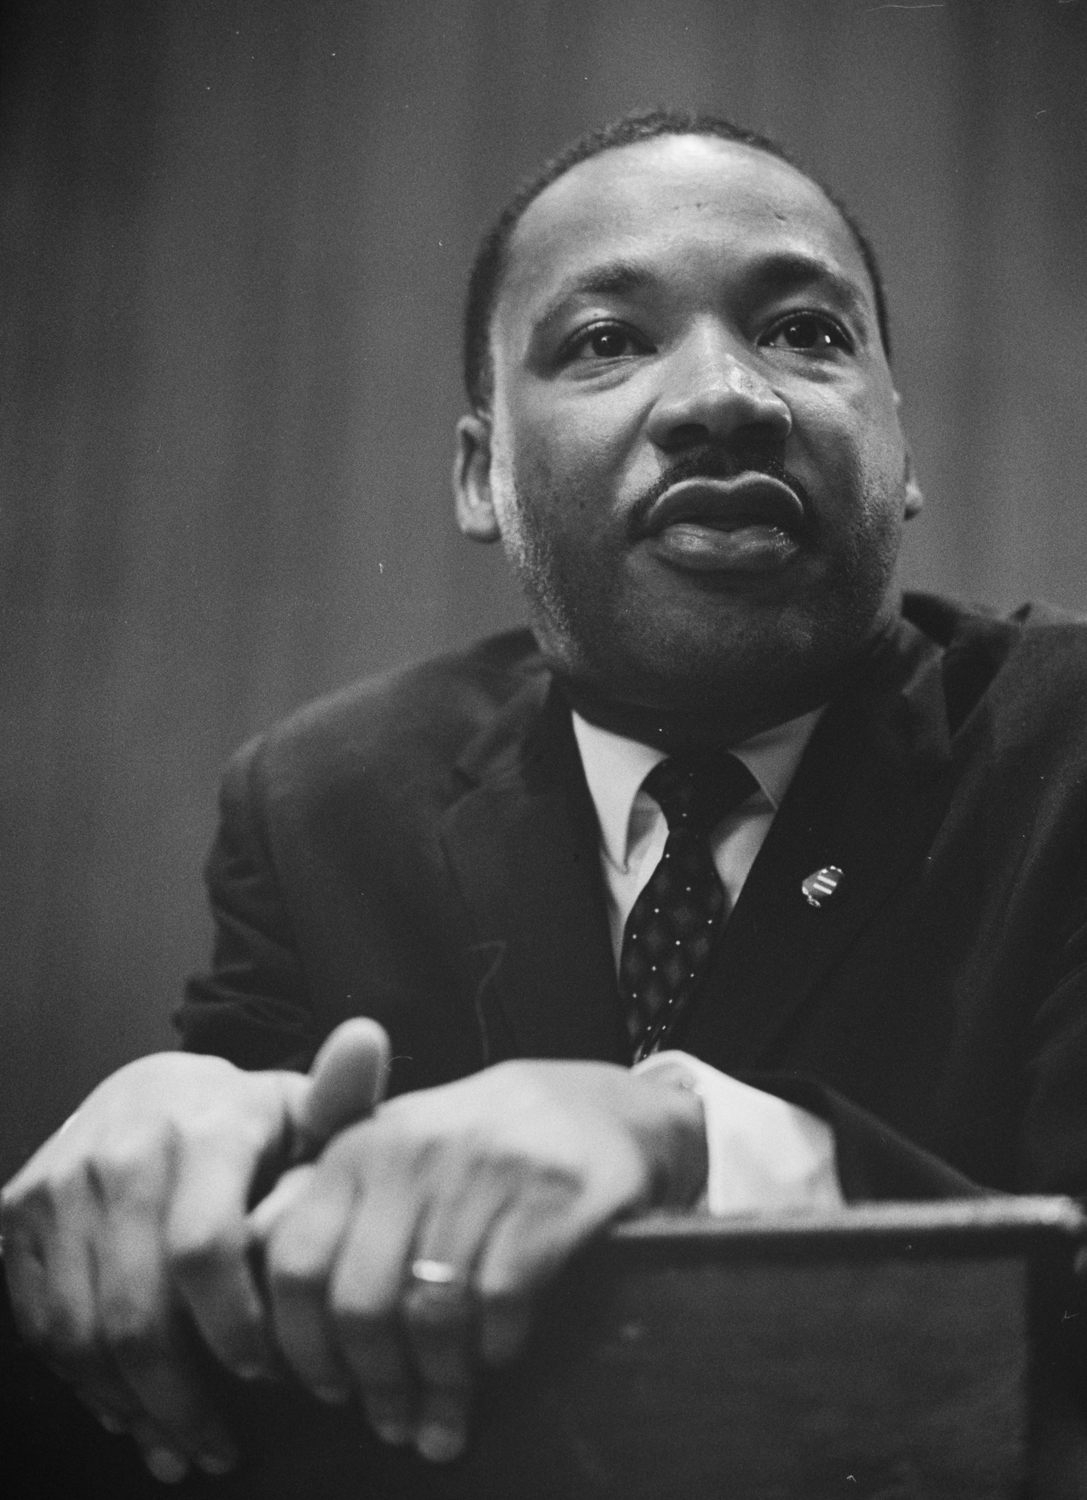 During the interfaith service praising Martin Luther King Jr. on Tuesday night, art, music and poetry were used to bridge different faiths.